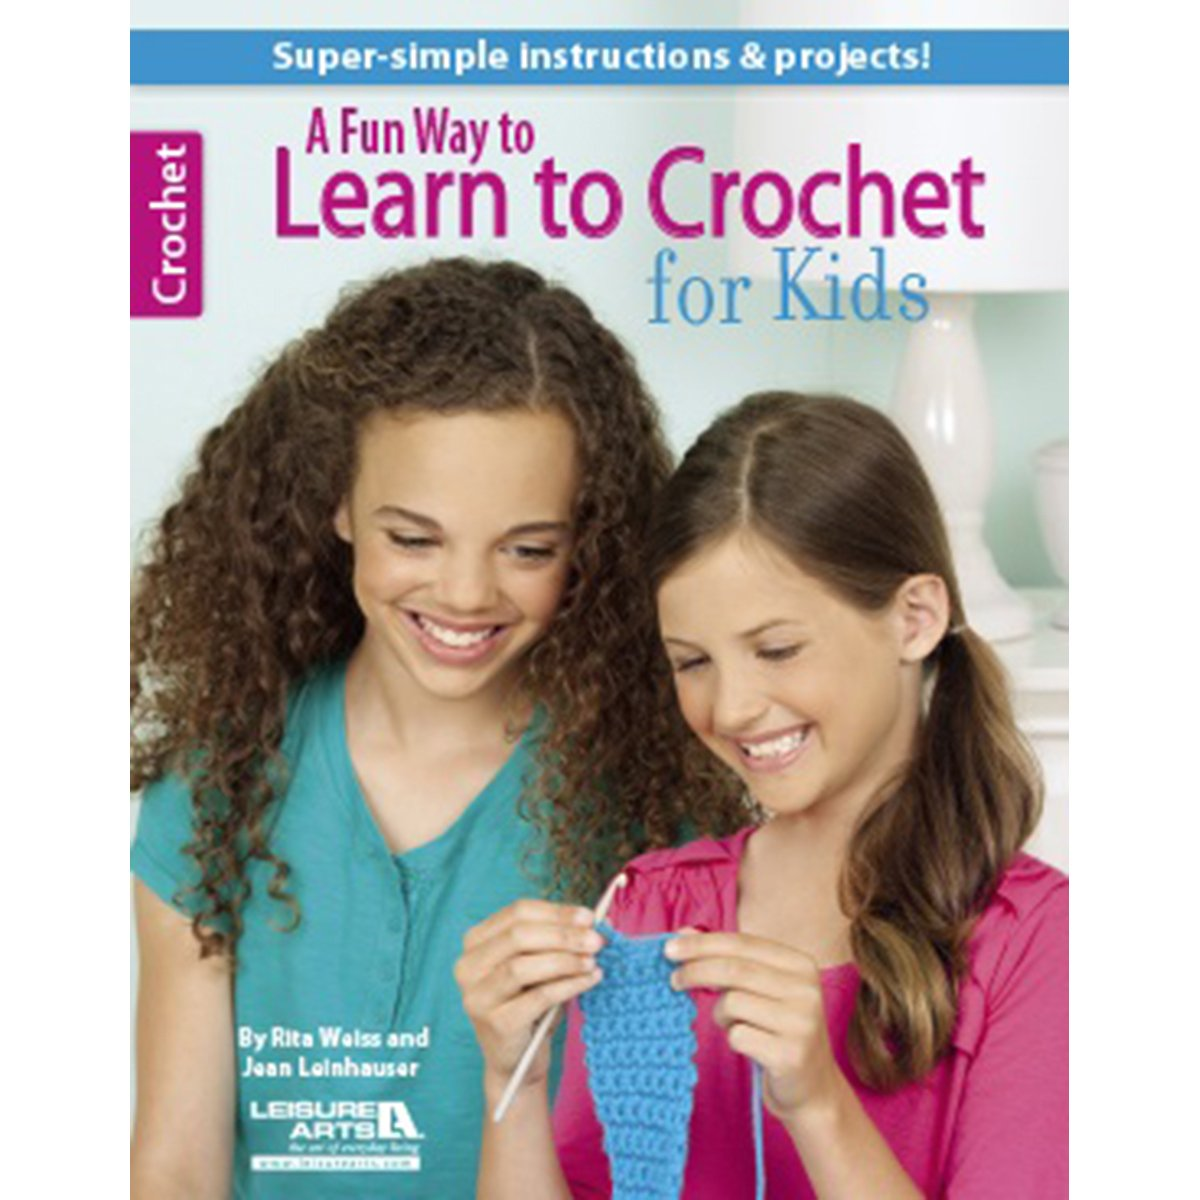 LEISURE ARTS Books, A Fun Way to Learn Crochet for Kids